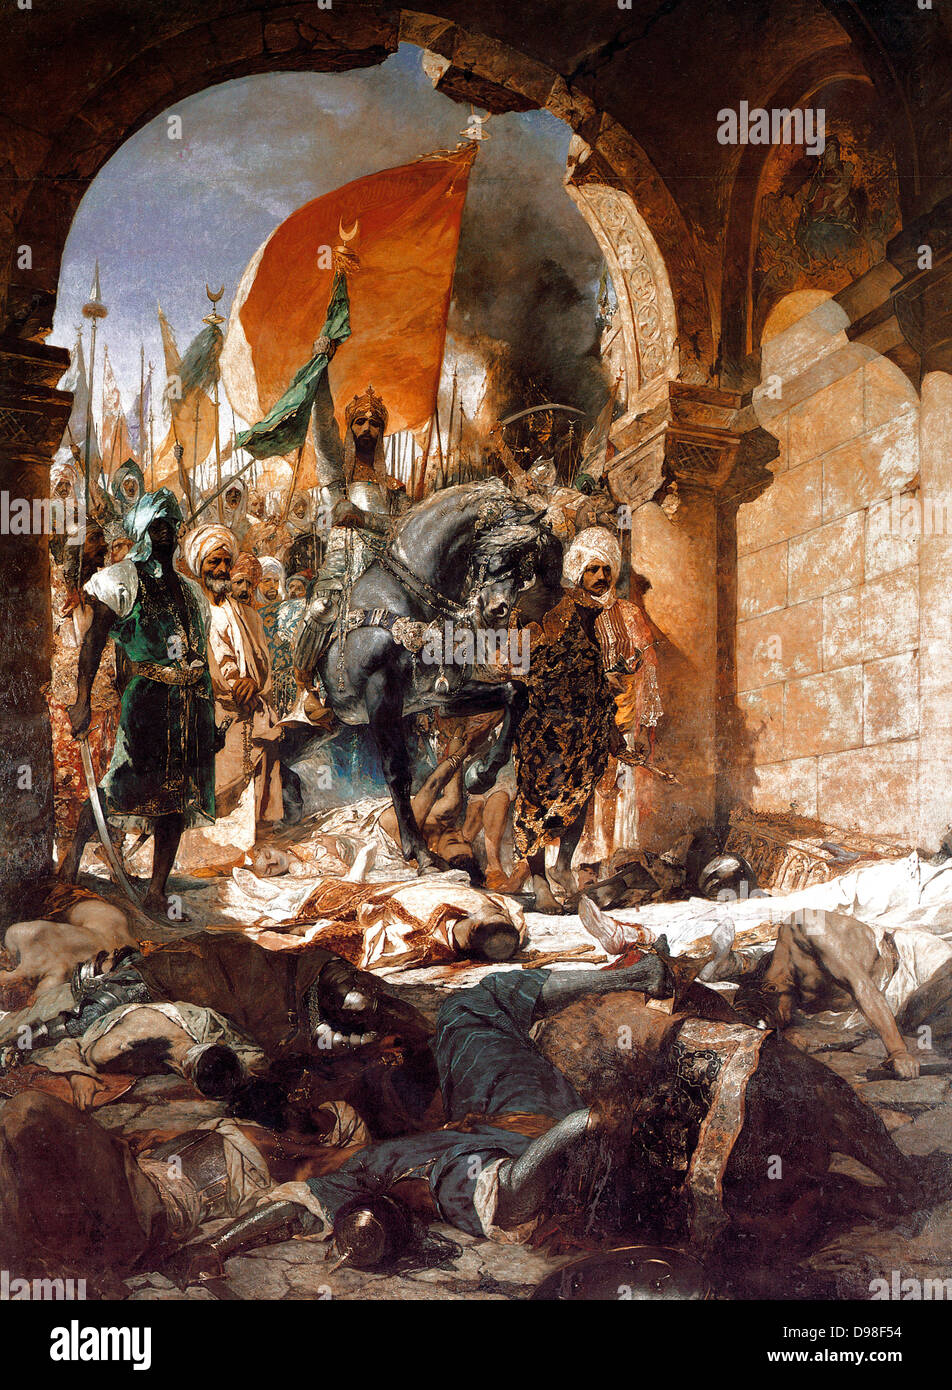 Benjamin Constant 1845–1902, French artist. 'The Entry of Mehmet II into Constantinople' 1876 - Stock Image